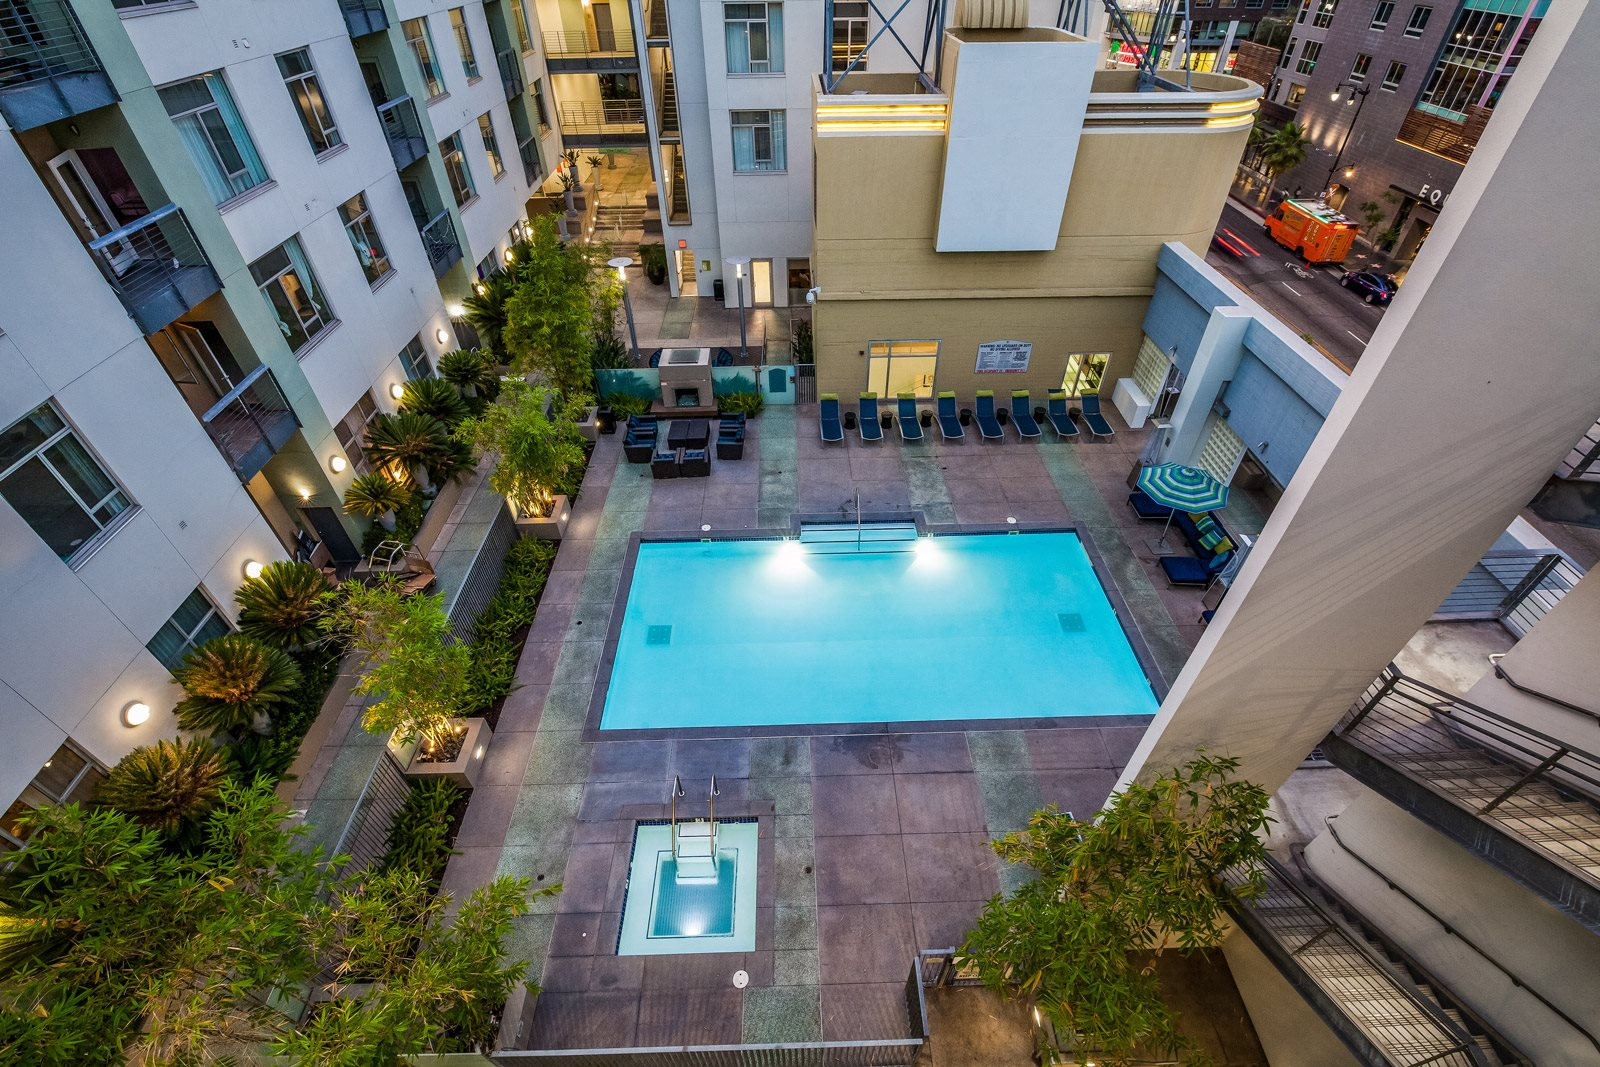 Relaxing Community in heart of the city at Sunset and Vine, 1555 Vine Street, CA